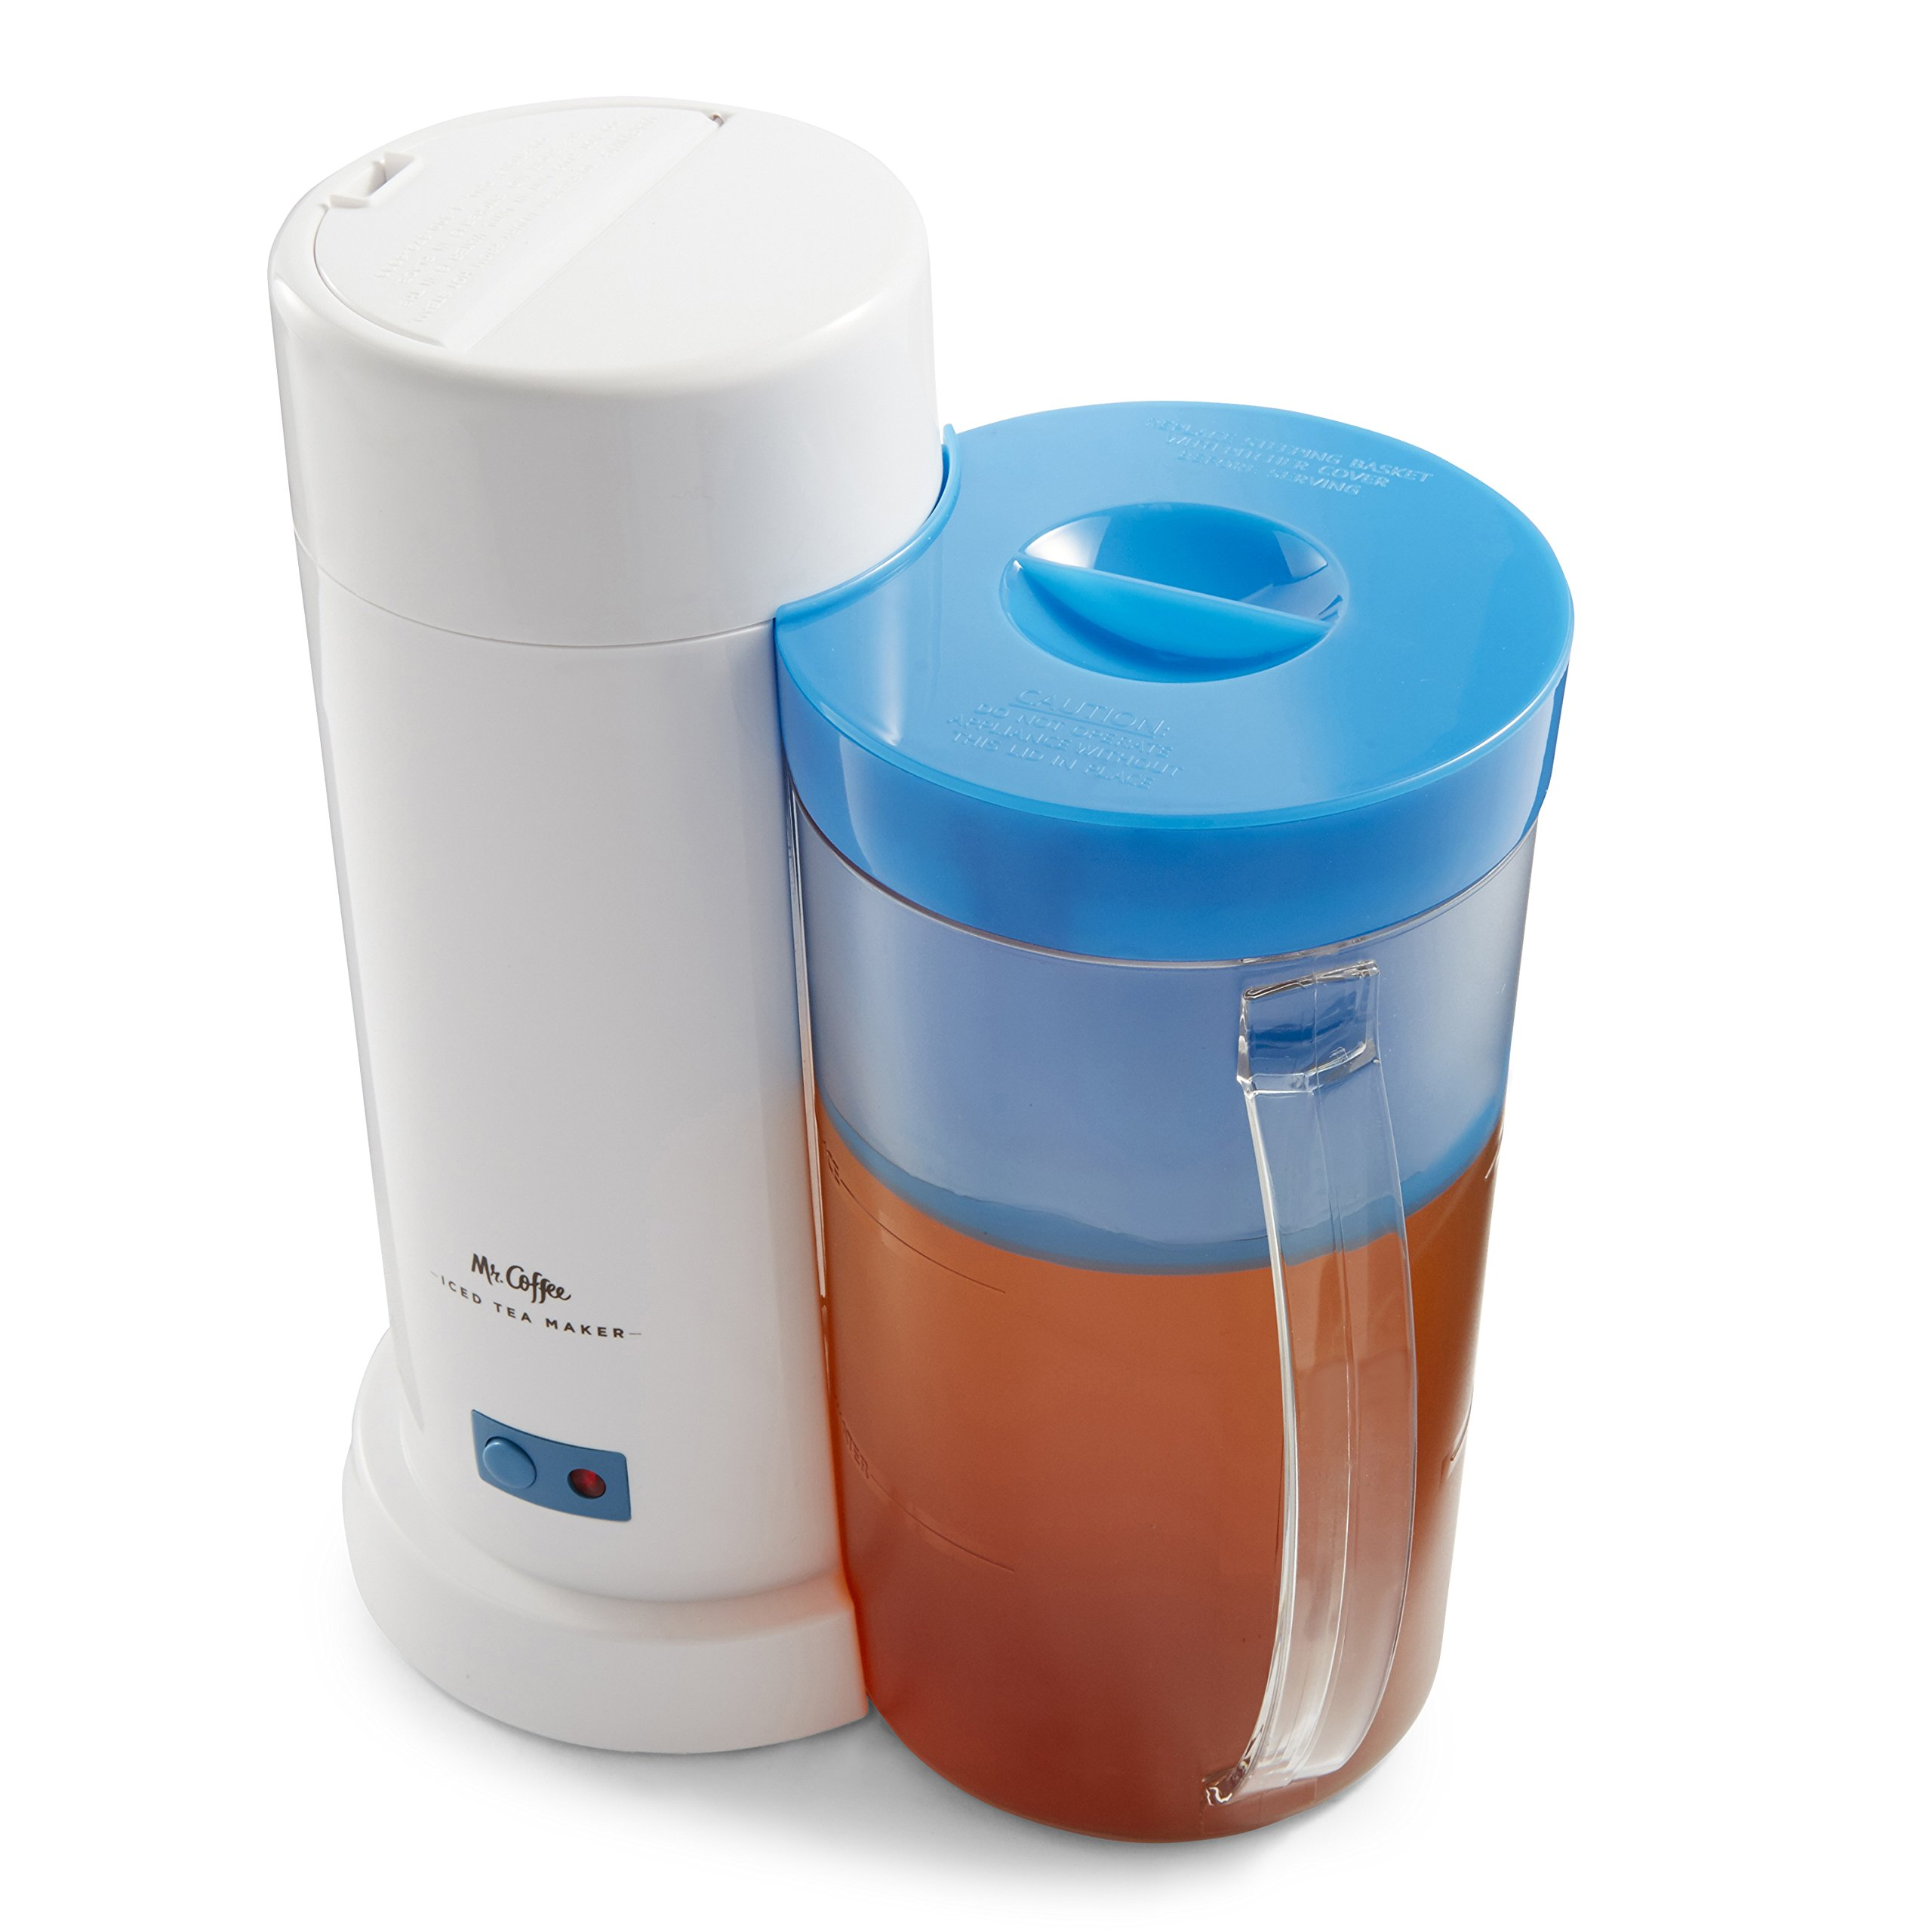 Mr. Coffee 2-Quart Iced Tea & Iced Coffee Maker, Blue by Mr. Coffee (Image #2)